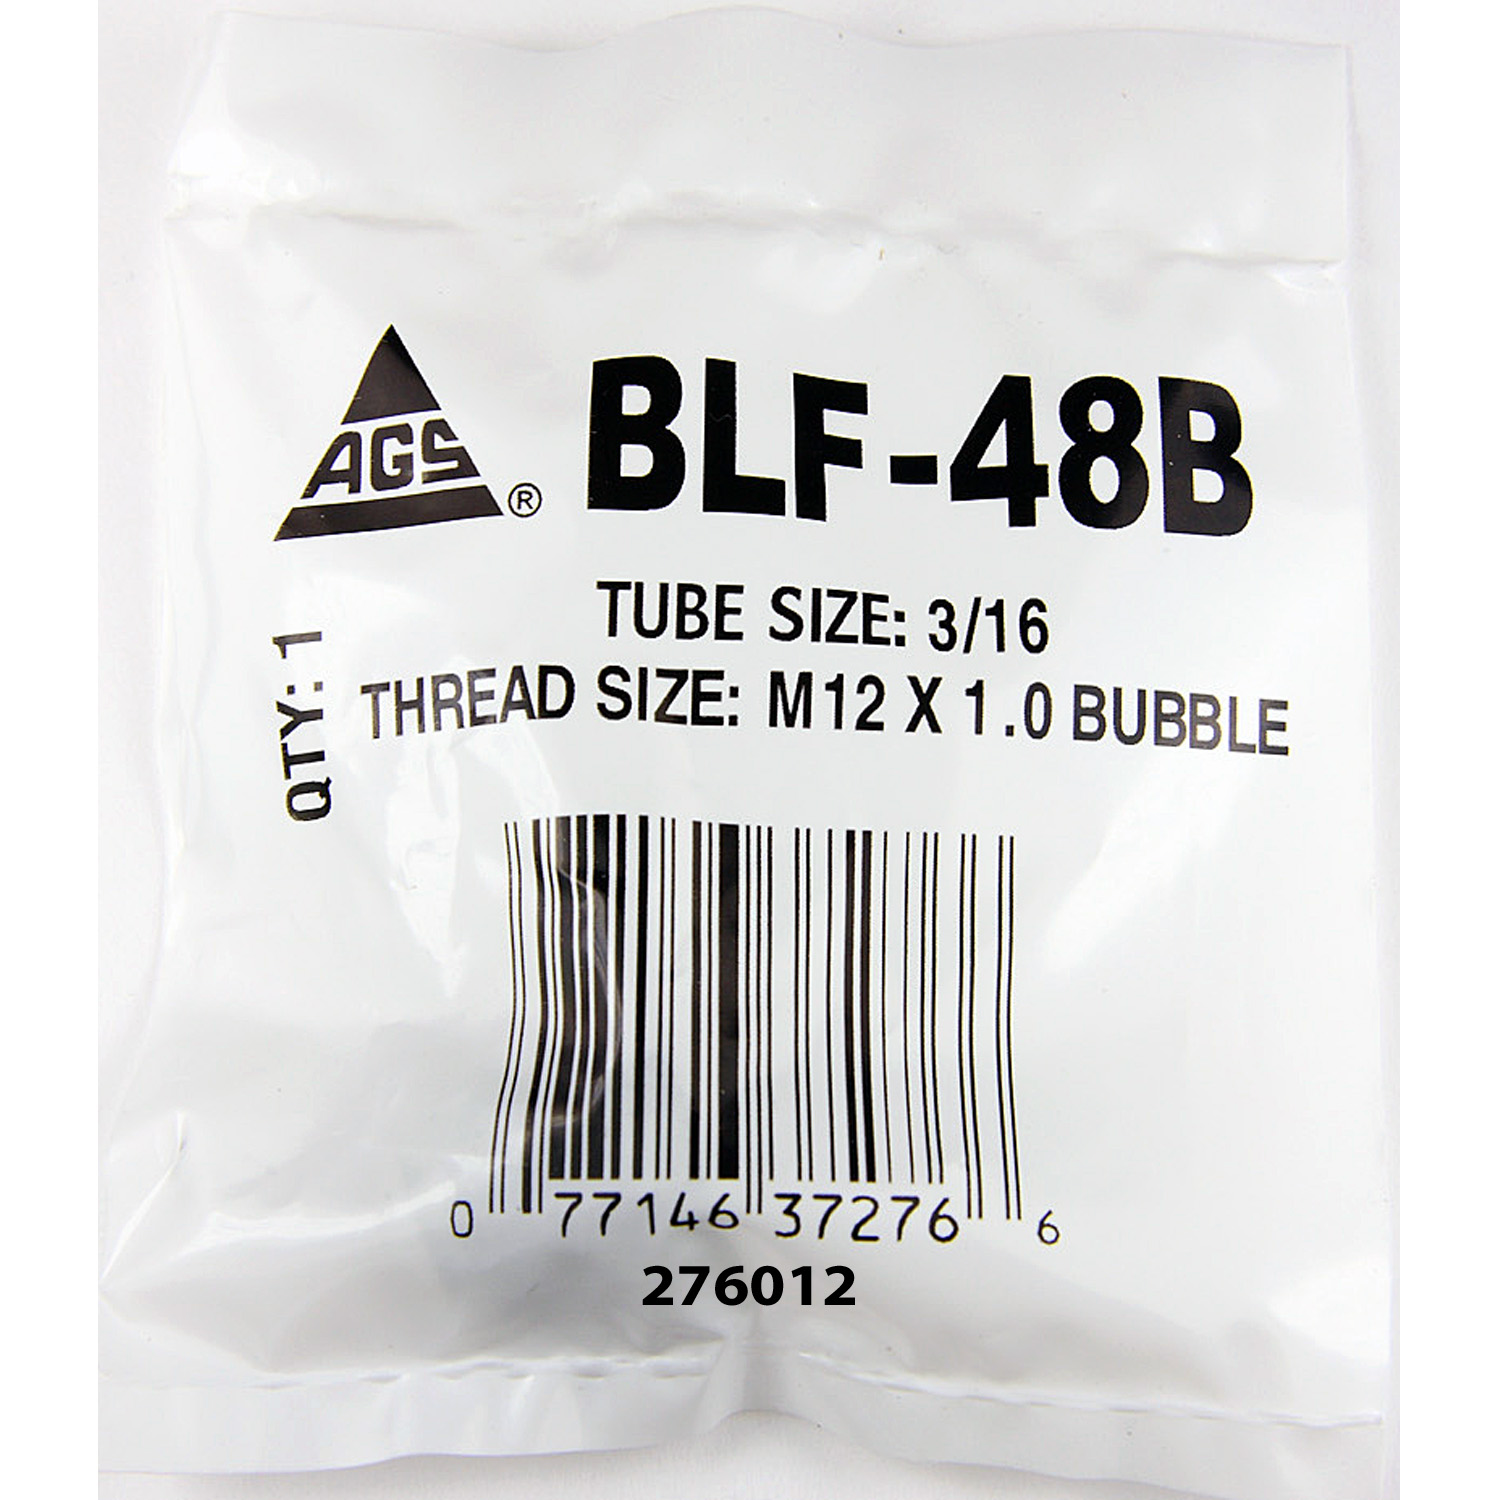 BLF-48B AGS Tube End Fitting Nut 3/16 Inch Import Tube Size